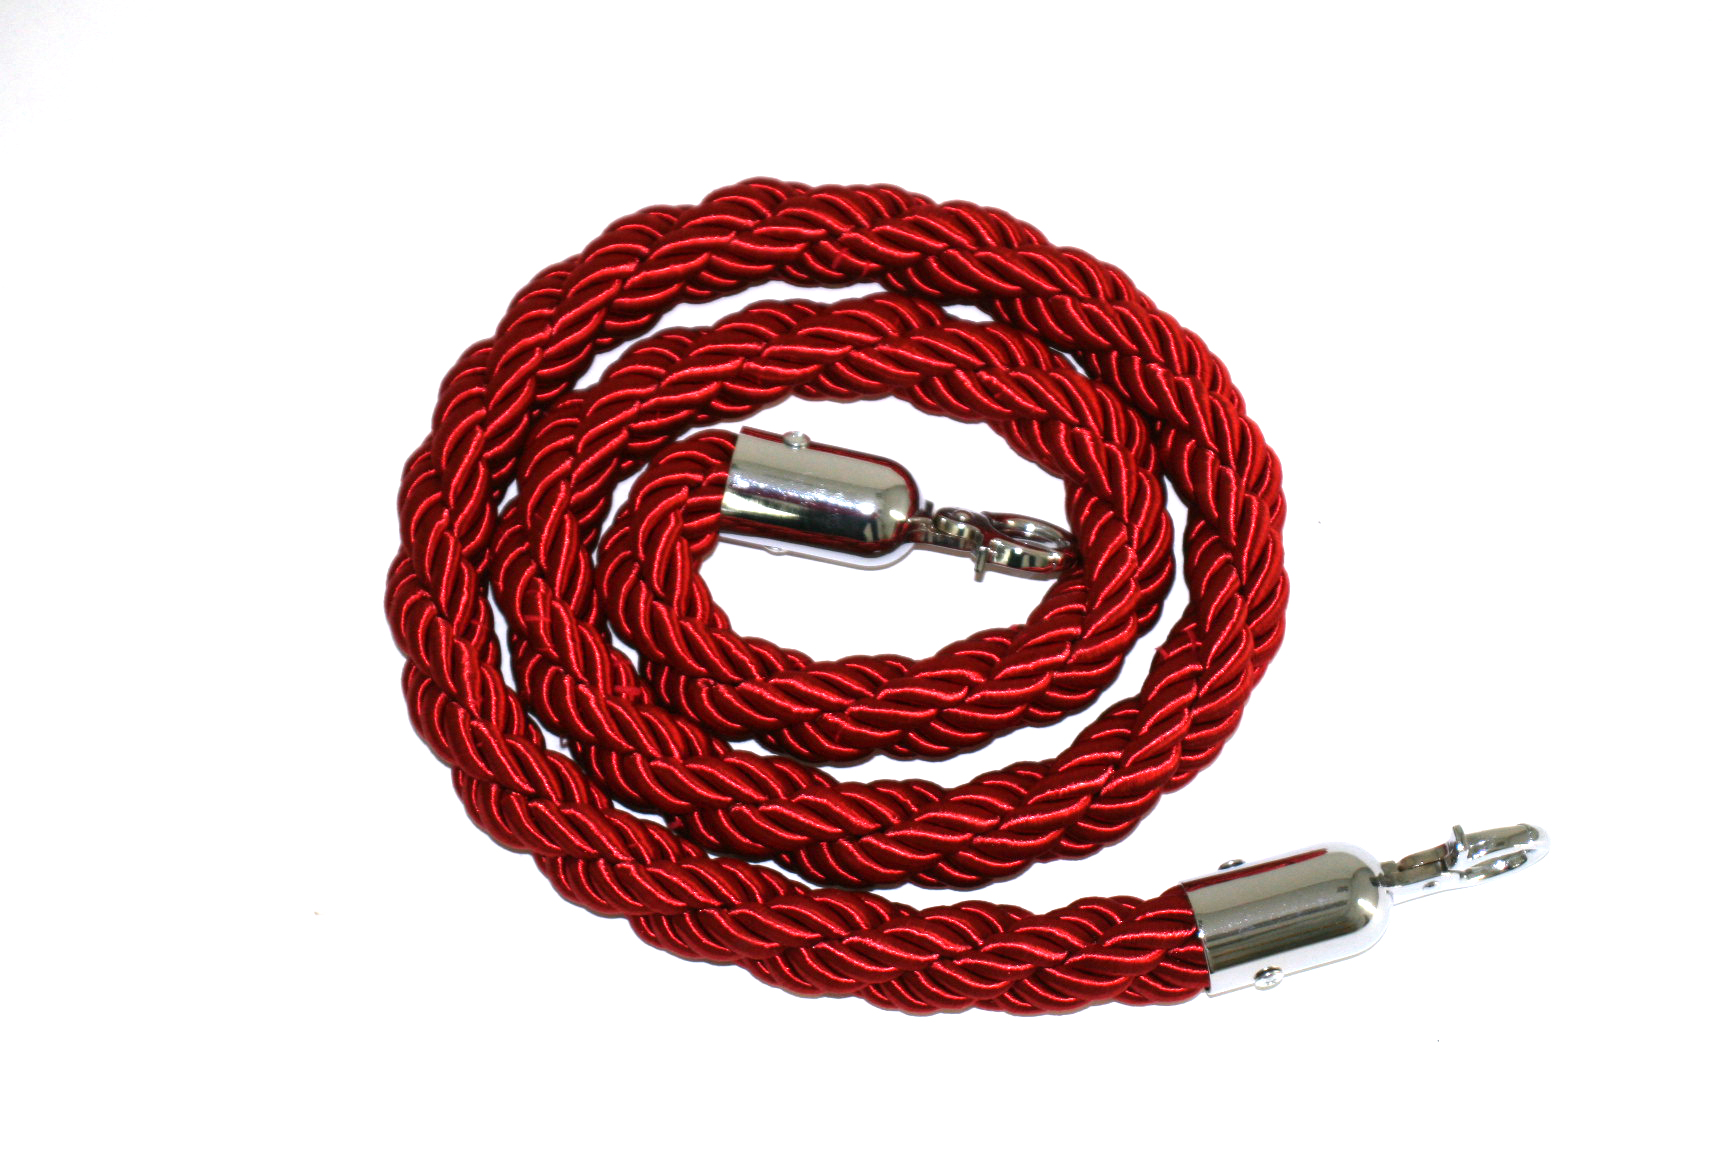 Red braided rope, 1.5m in length - BE Event Hire